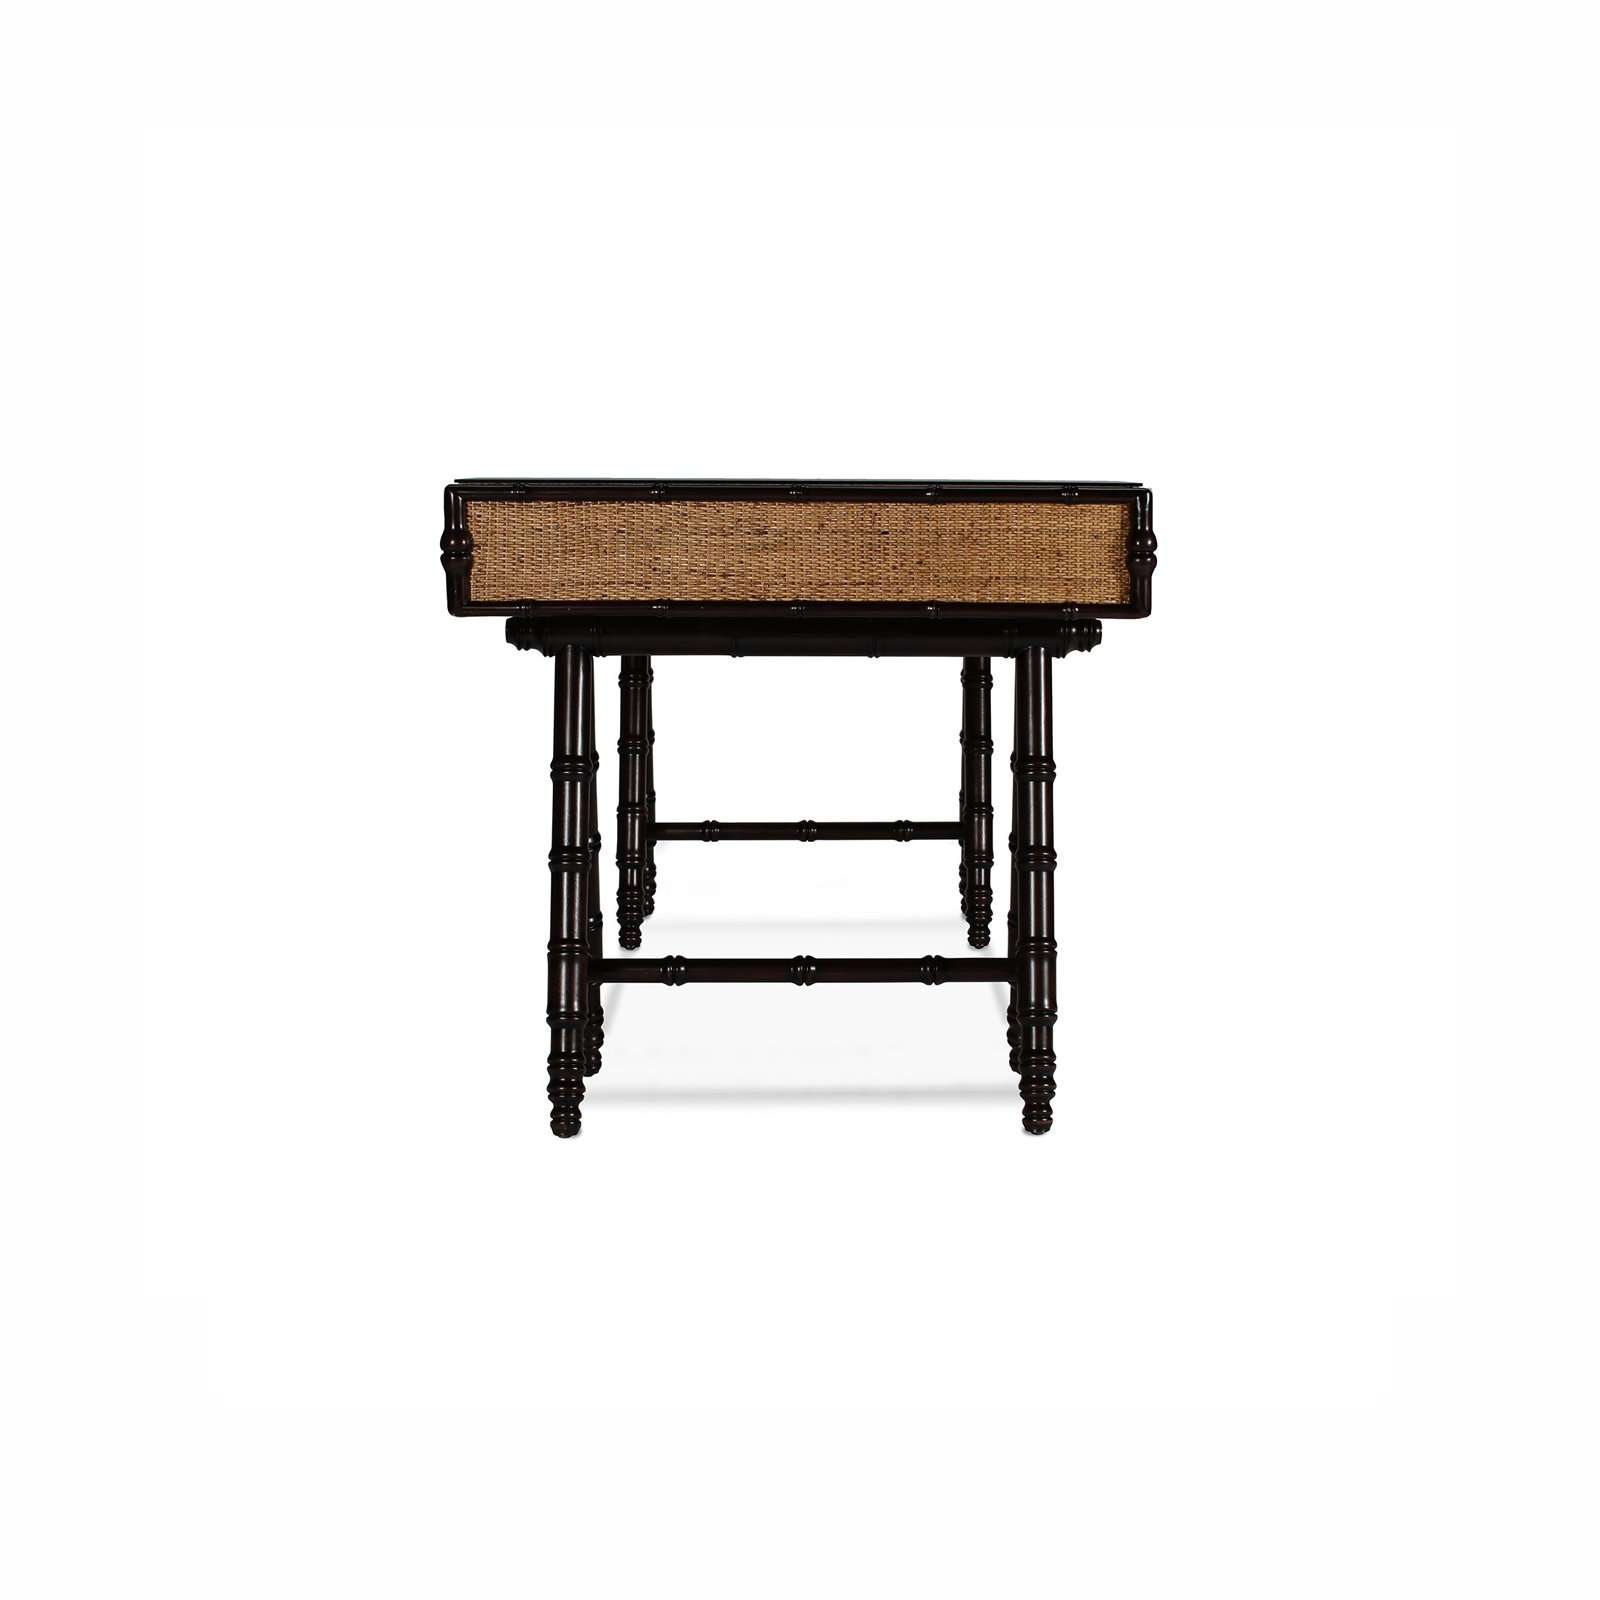 INDIGO COAST DESK 2 - STUART MEMBERY HOME COLLECTION